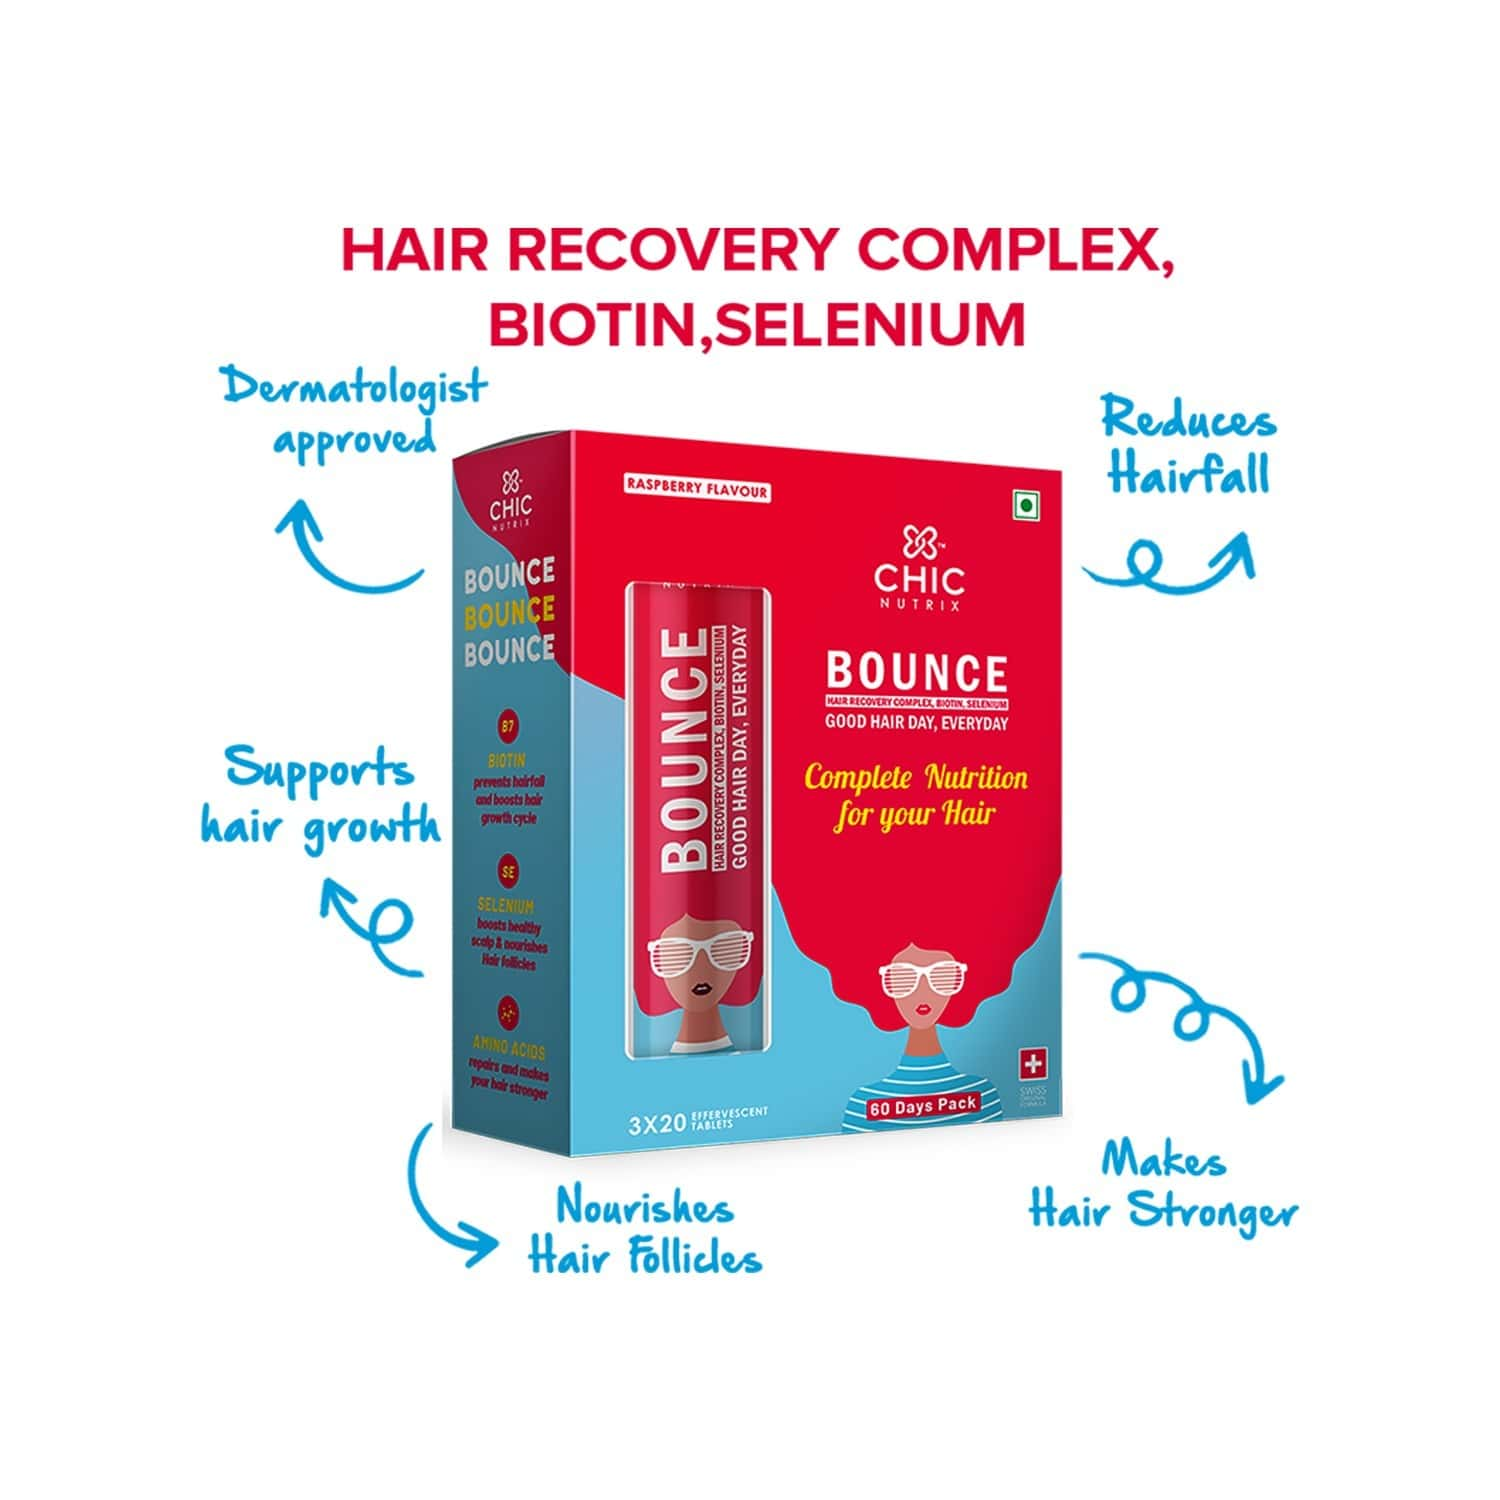 Chicnutrix Bounce - Hair Recovery Complex, Biotin, Selenium For A Good Hair Day, Everyday - 60 Effervescent Tablets - Raspberry Flavour